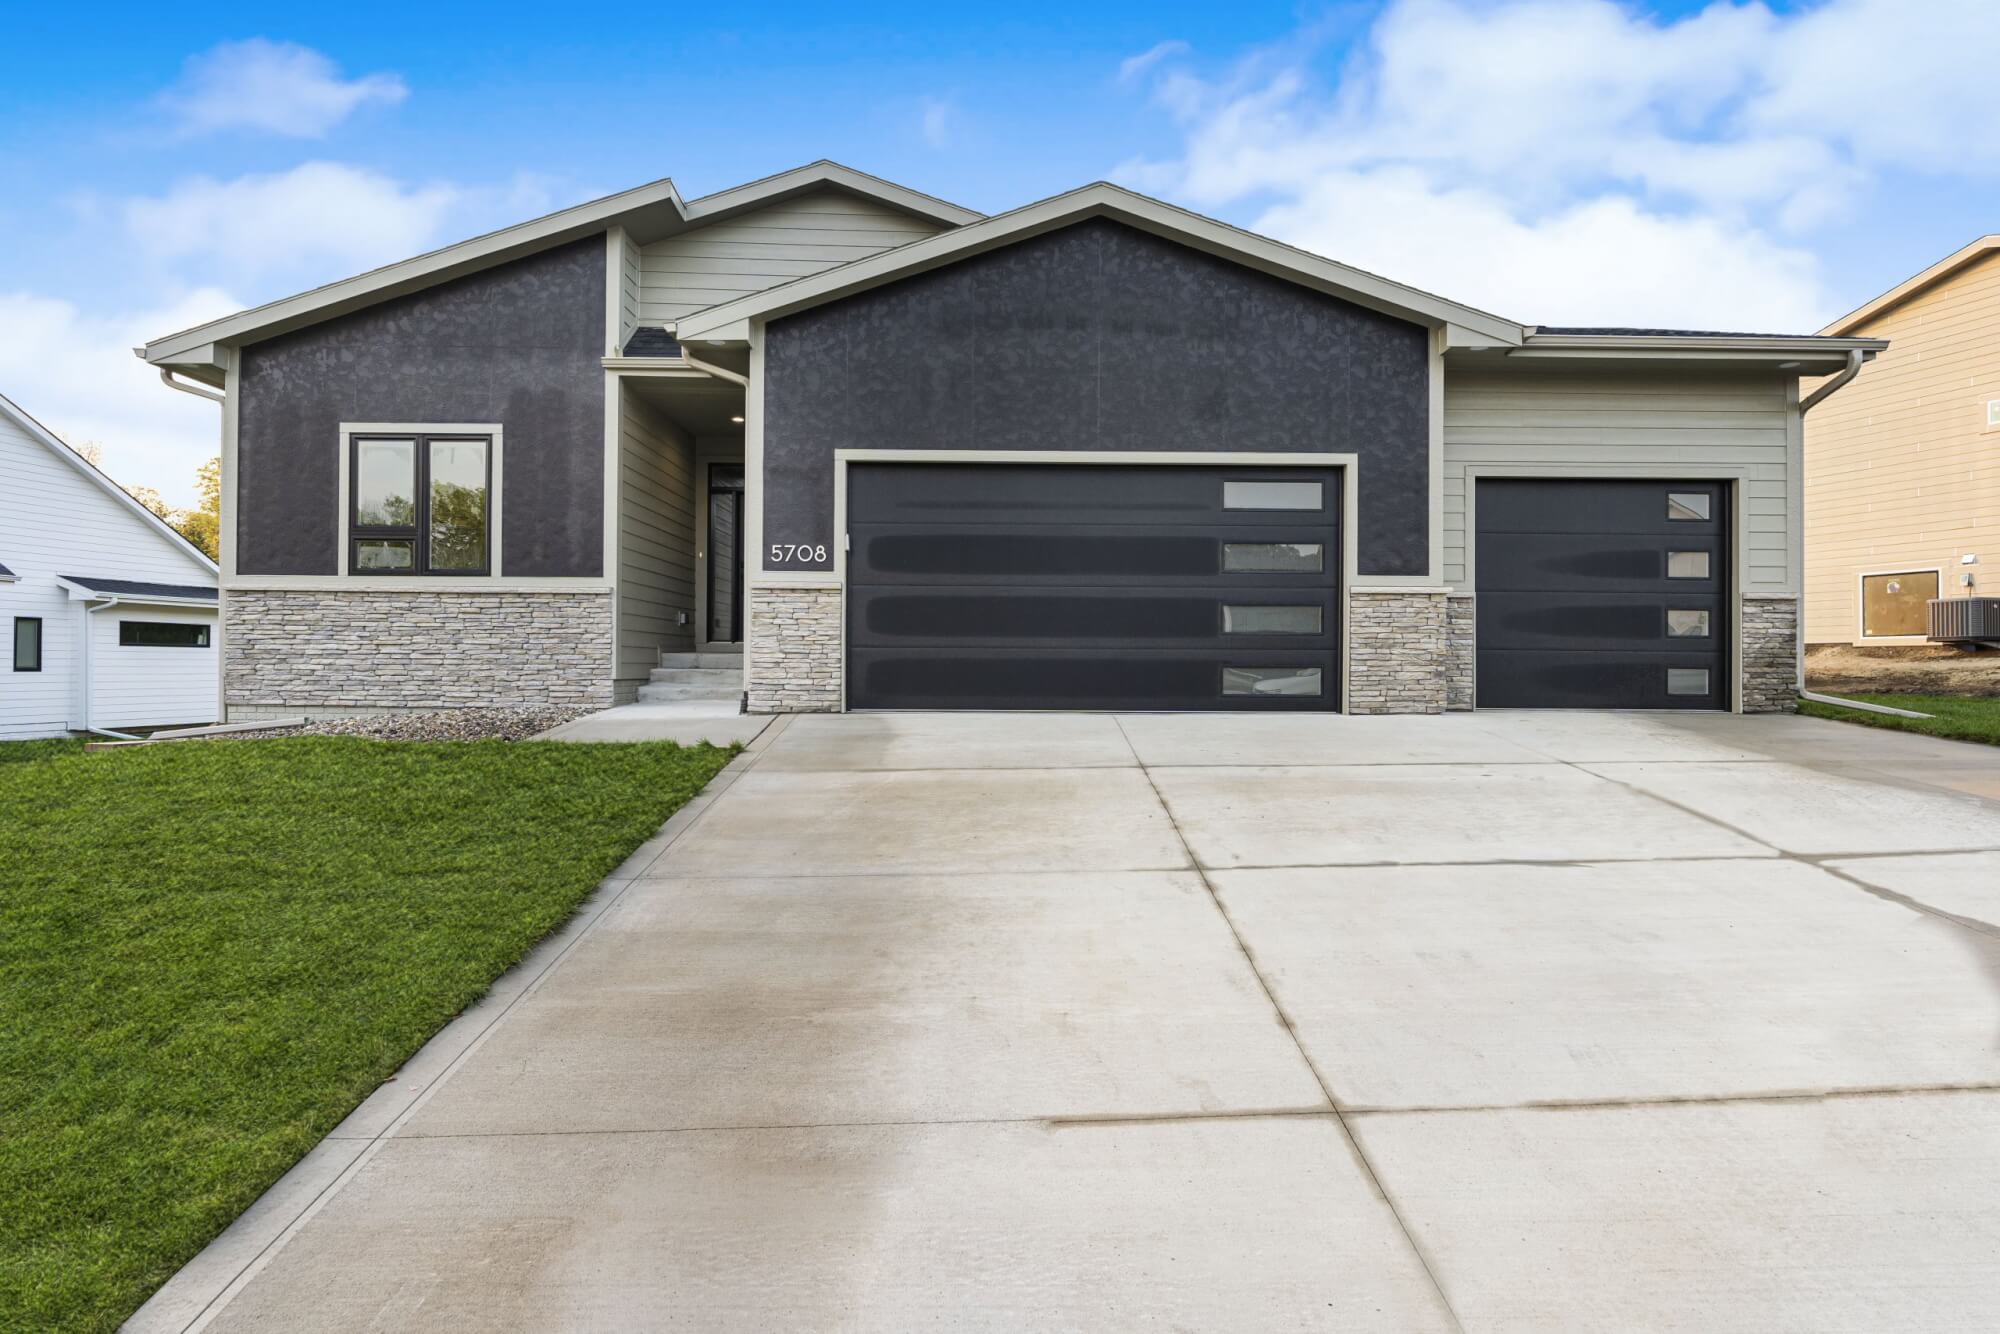 A black and grey home built by Kruse Development.